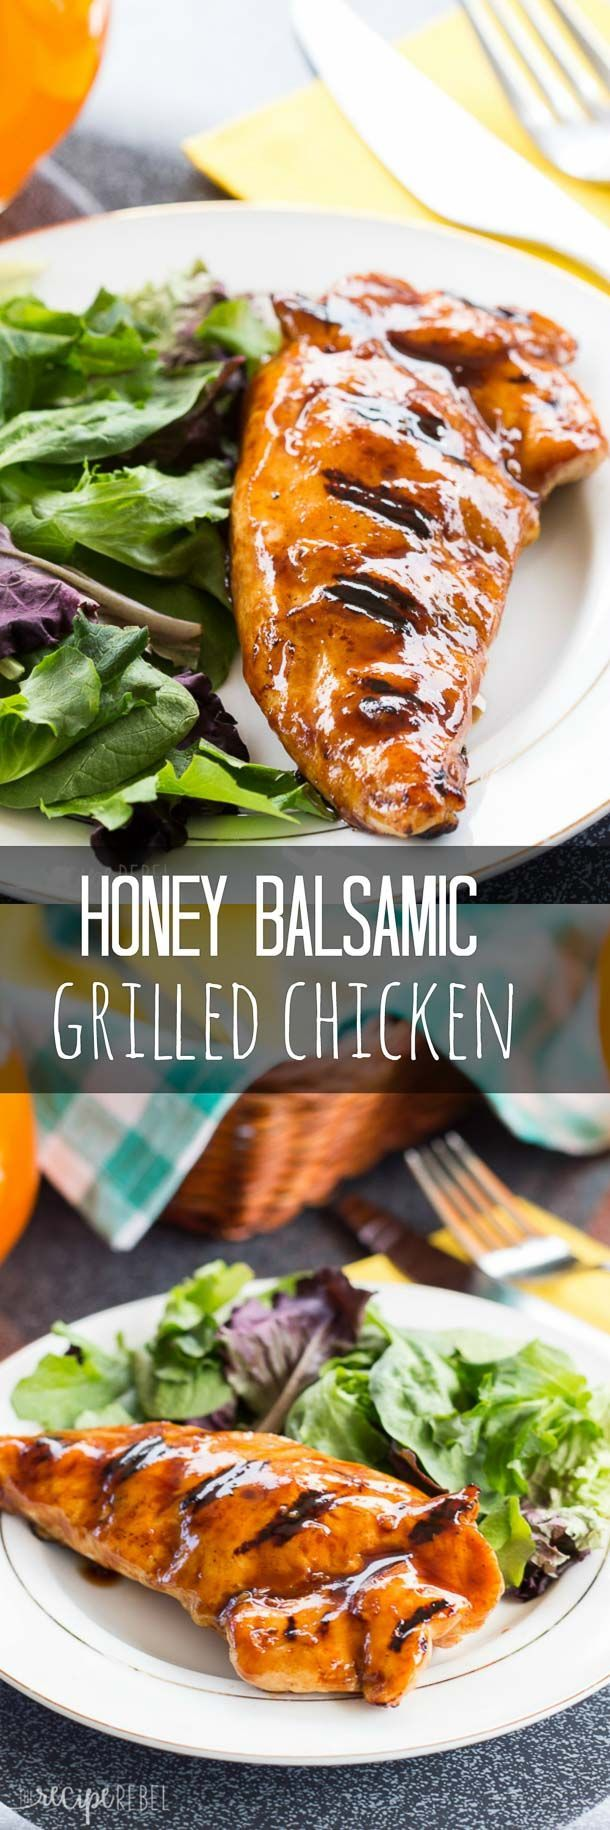 Honey Balsamic Grilled Chicken: Perfectly moist grilled chicken in a sweet and tangy honey balsamic sauce -- a great way to spice up your grilling this summer! #ad #RenovaCanada www.thereciperebel.com